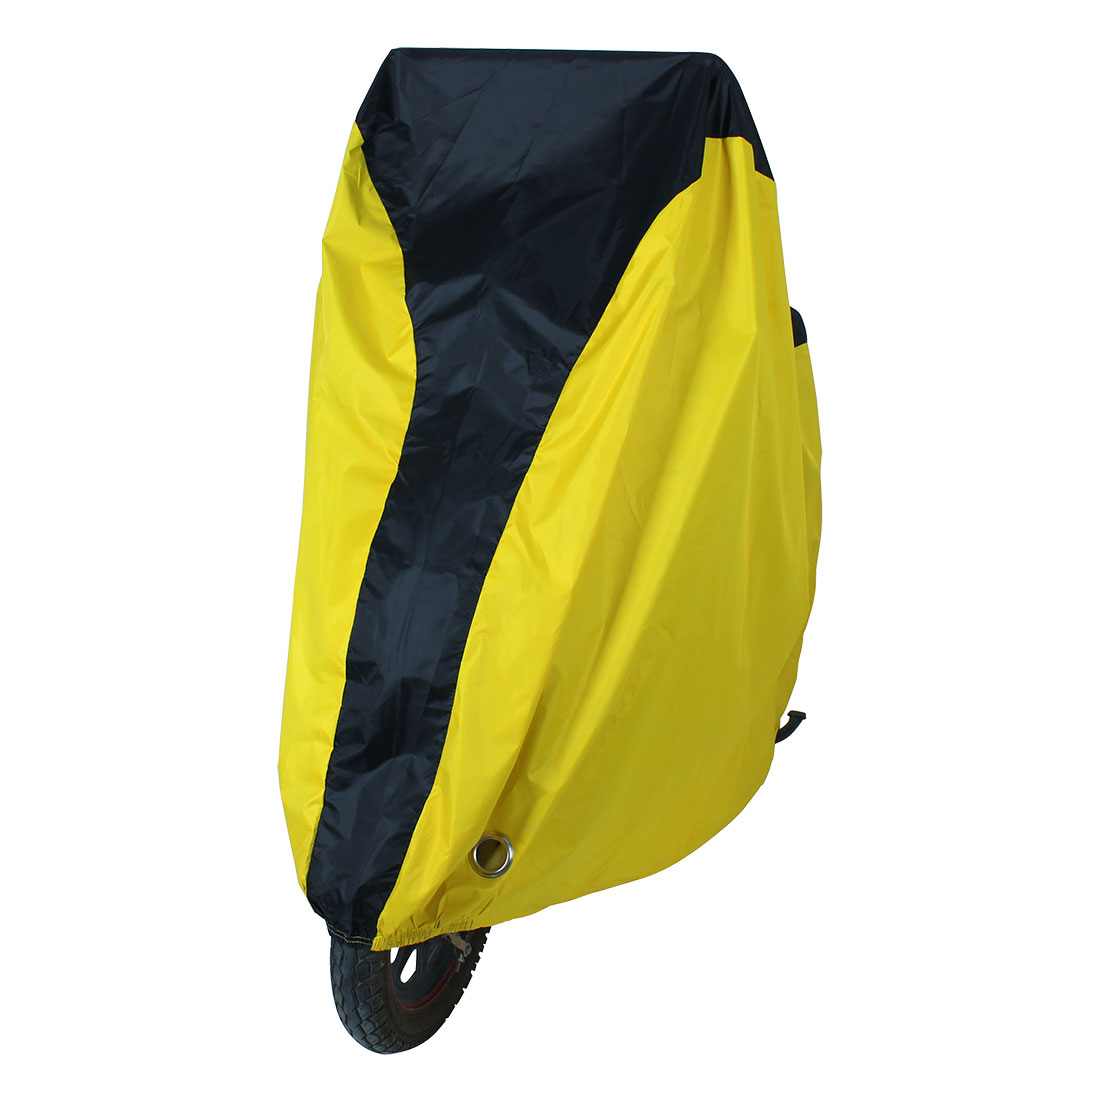 Outdoor Bike Bicycle Rain Dust Cover Water Resistant Garage Scooter Protector XL Yellow